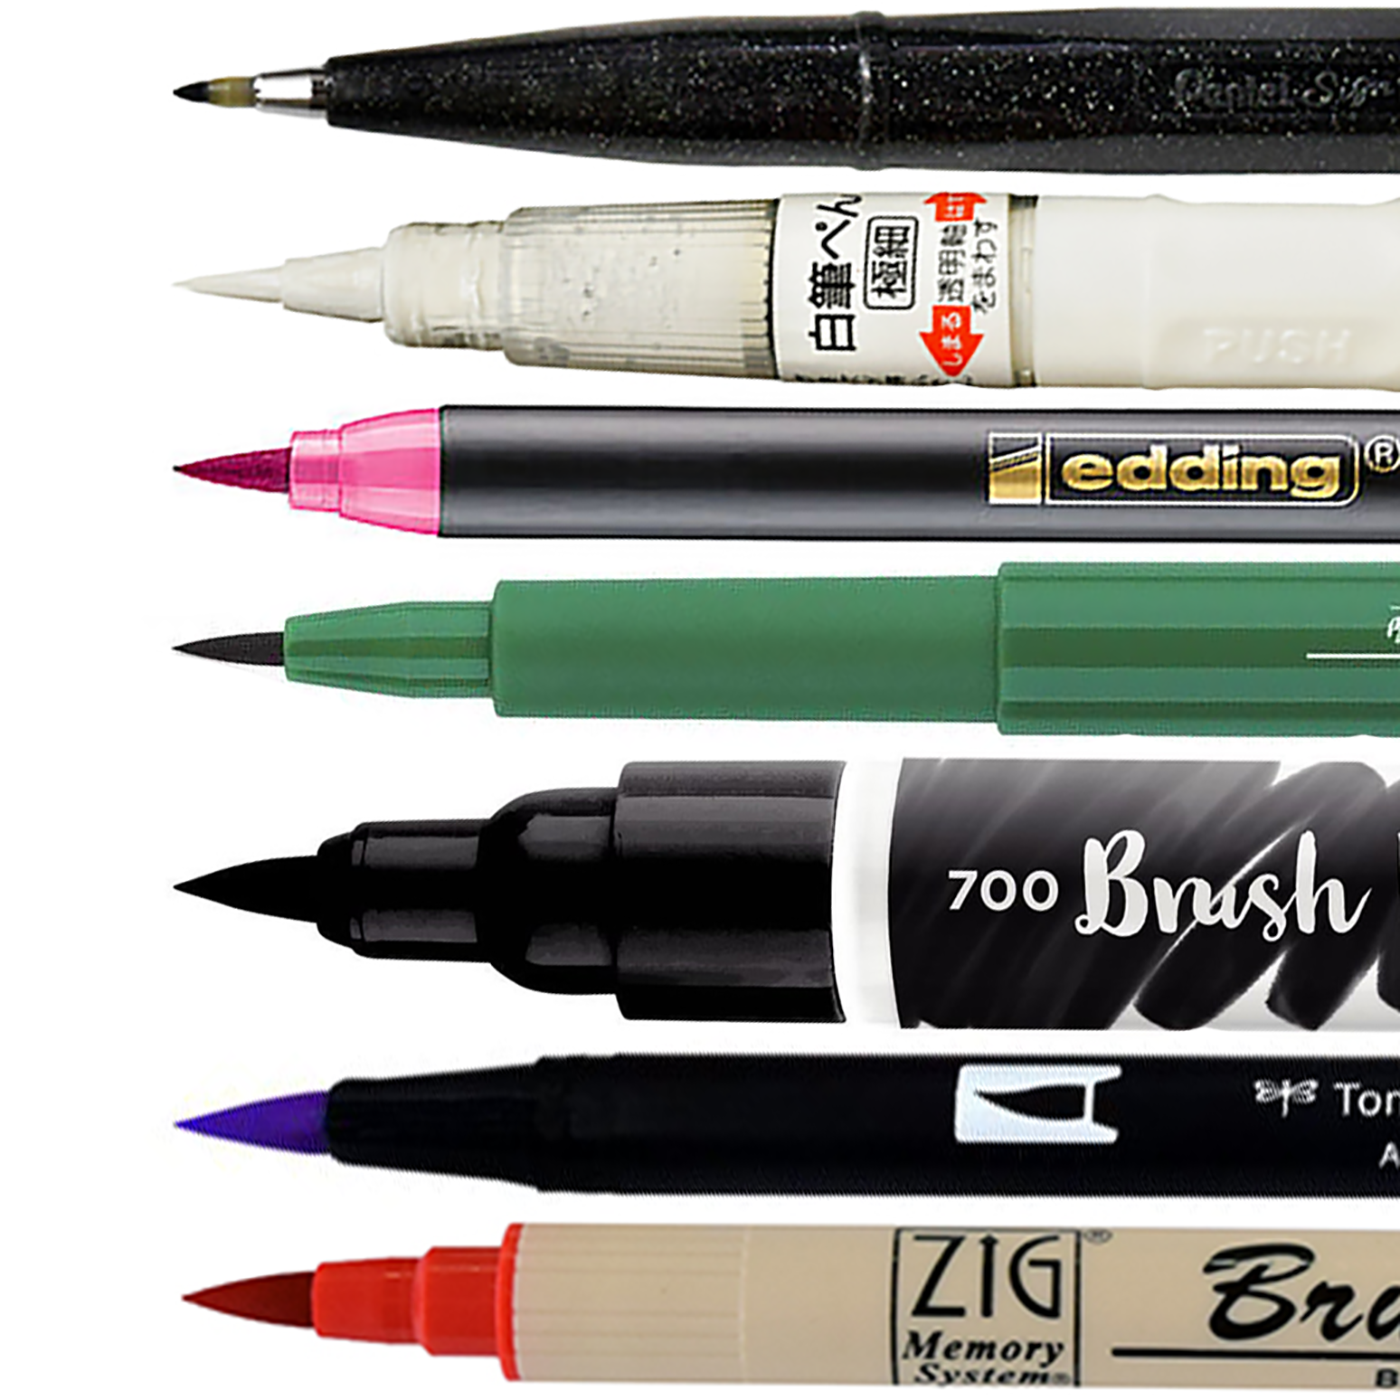 Ecurson Fine Line Brush Pens in 10 Colors Brush Markers Paint Markers Paint Pens Watercolor Paint Calligraphy Pens Watercolor Markers for Adults Coloring Book Note Taking Writing